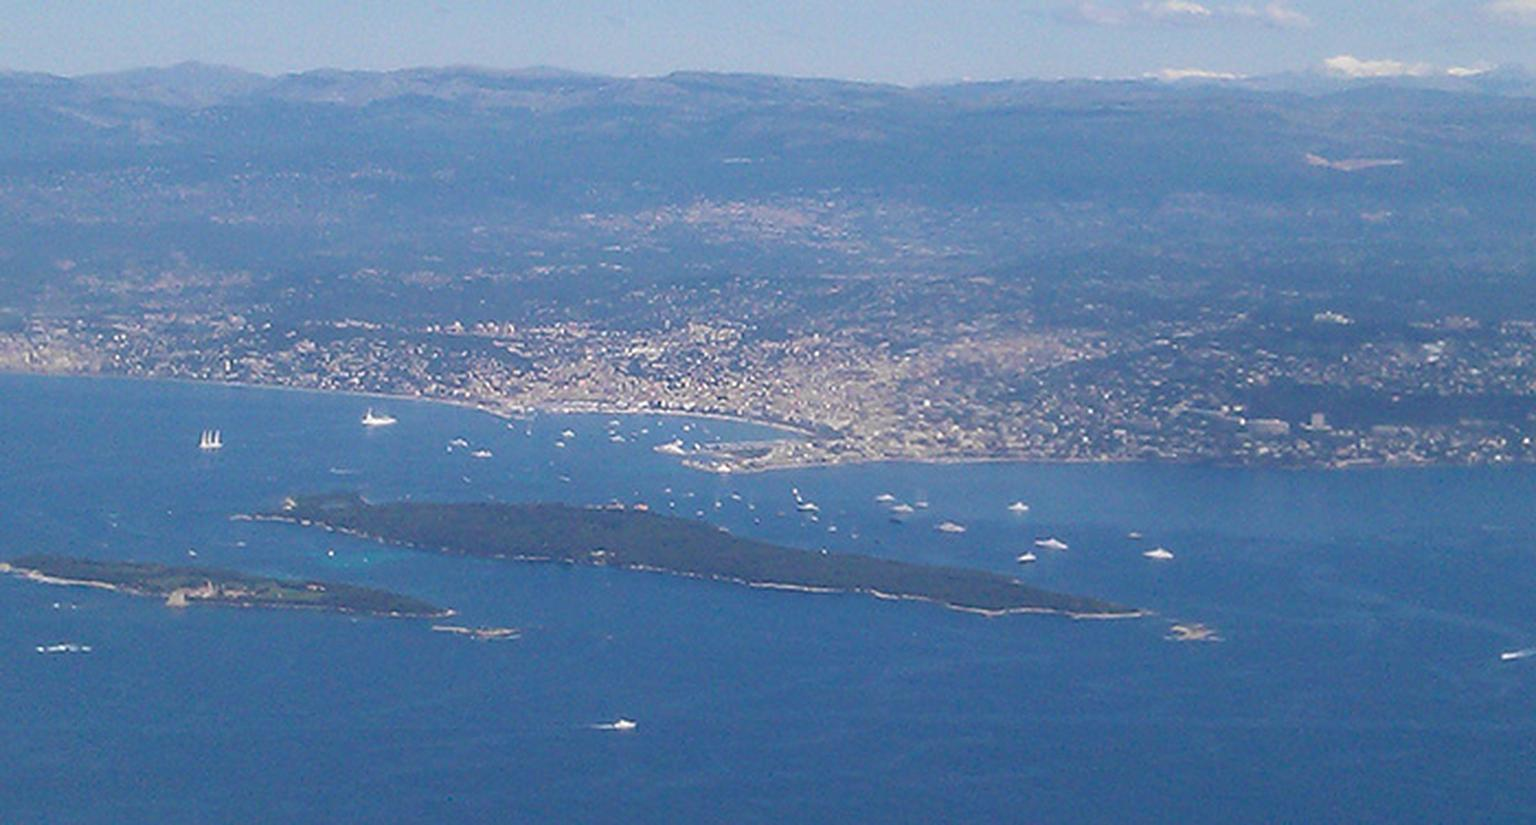 Cannes-from-the-air.jpg